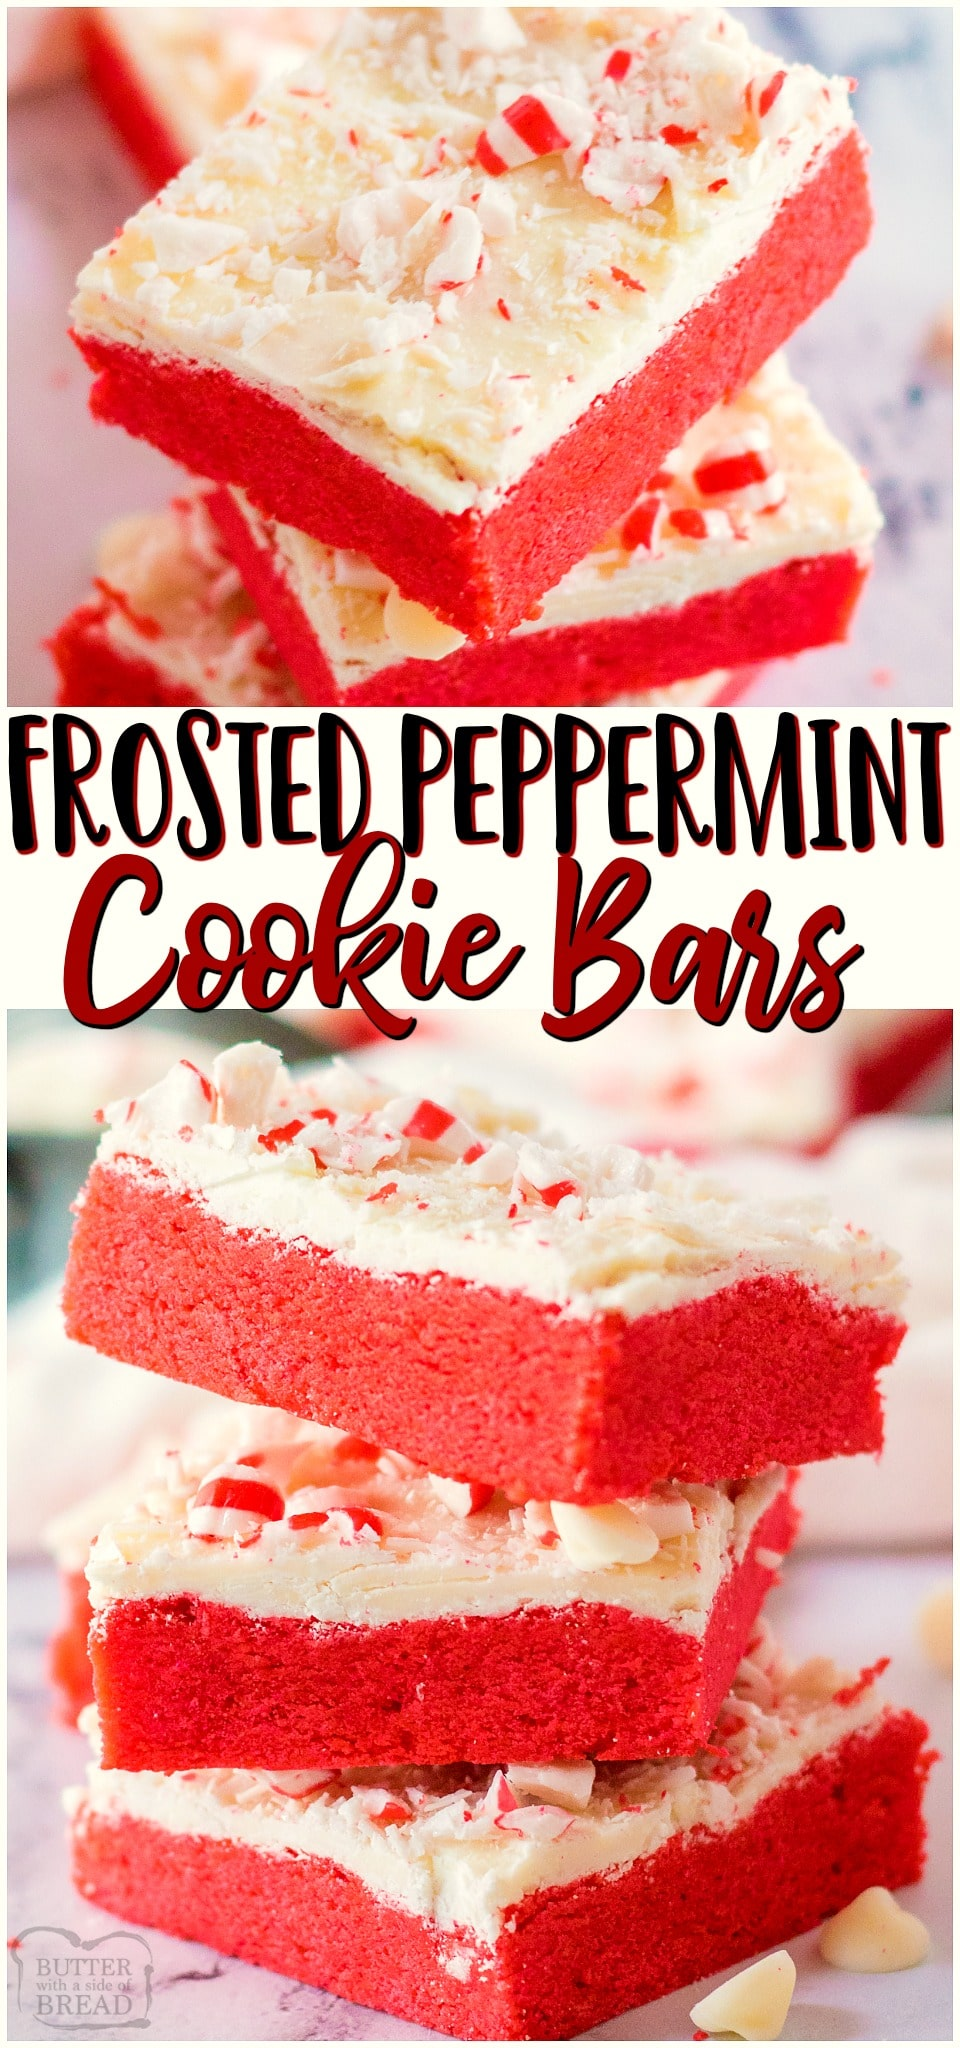 Frosted Peppermint Cookie Barsare festive holiday sugar cookies baked into bars & topped with sweet white chocolate & peppermints! Easy cookie bar recipe with lovely peppermint flavor perfect for Christmas baking.